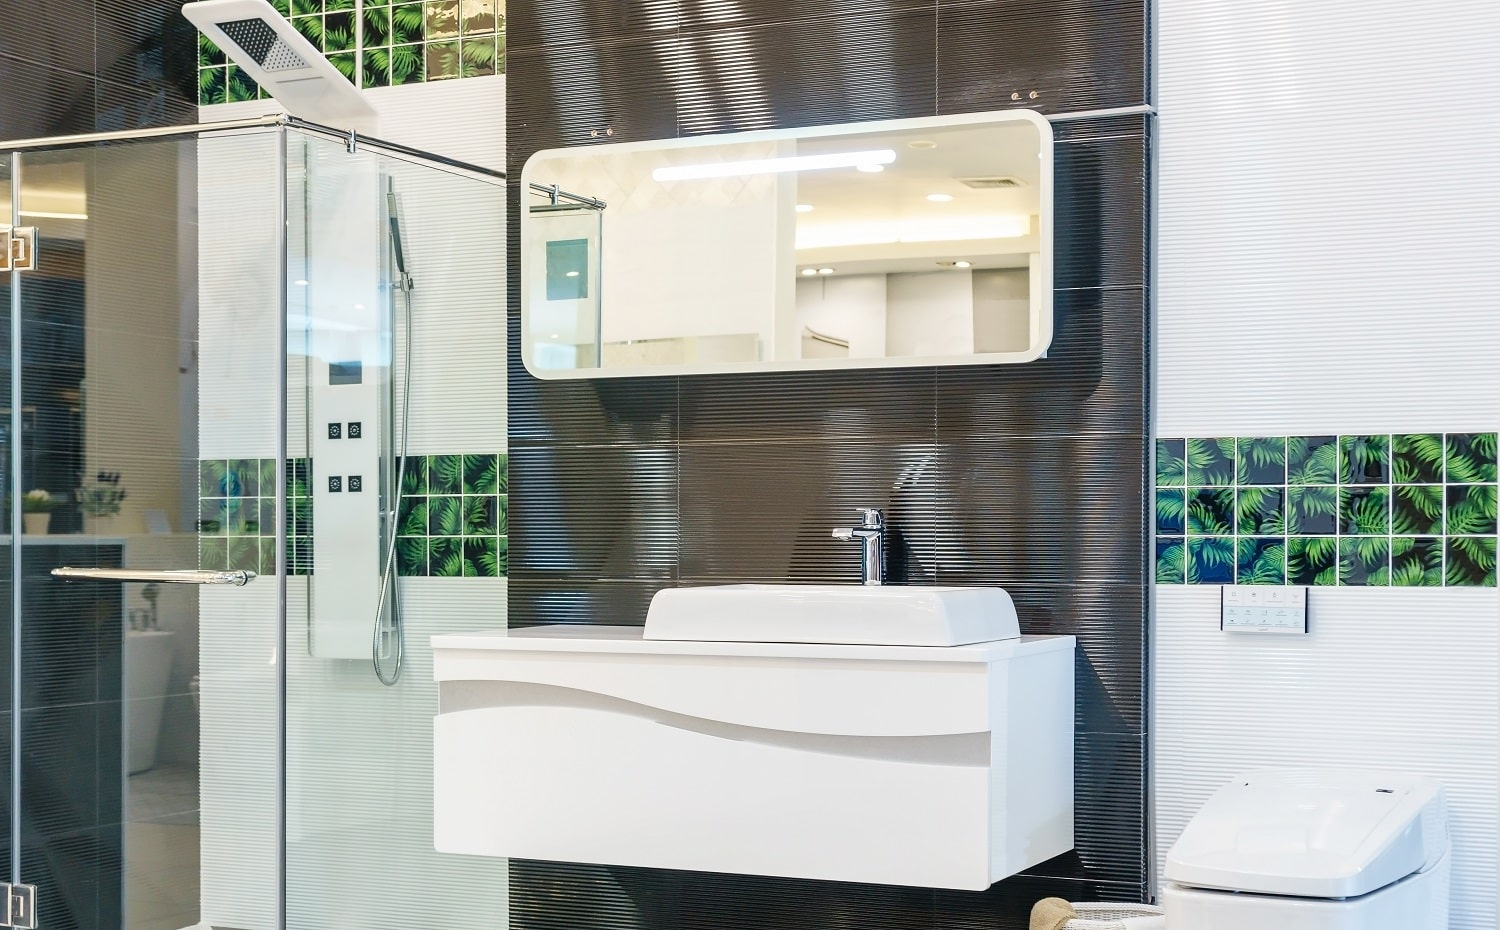 Spacious and bright modern bathroom interior with white walls, a shower cabin with glass wall, a toilet and faucet sink